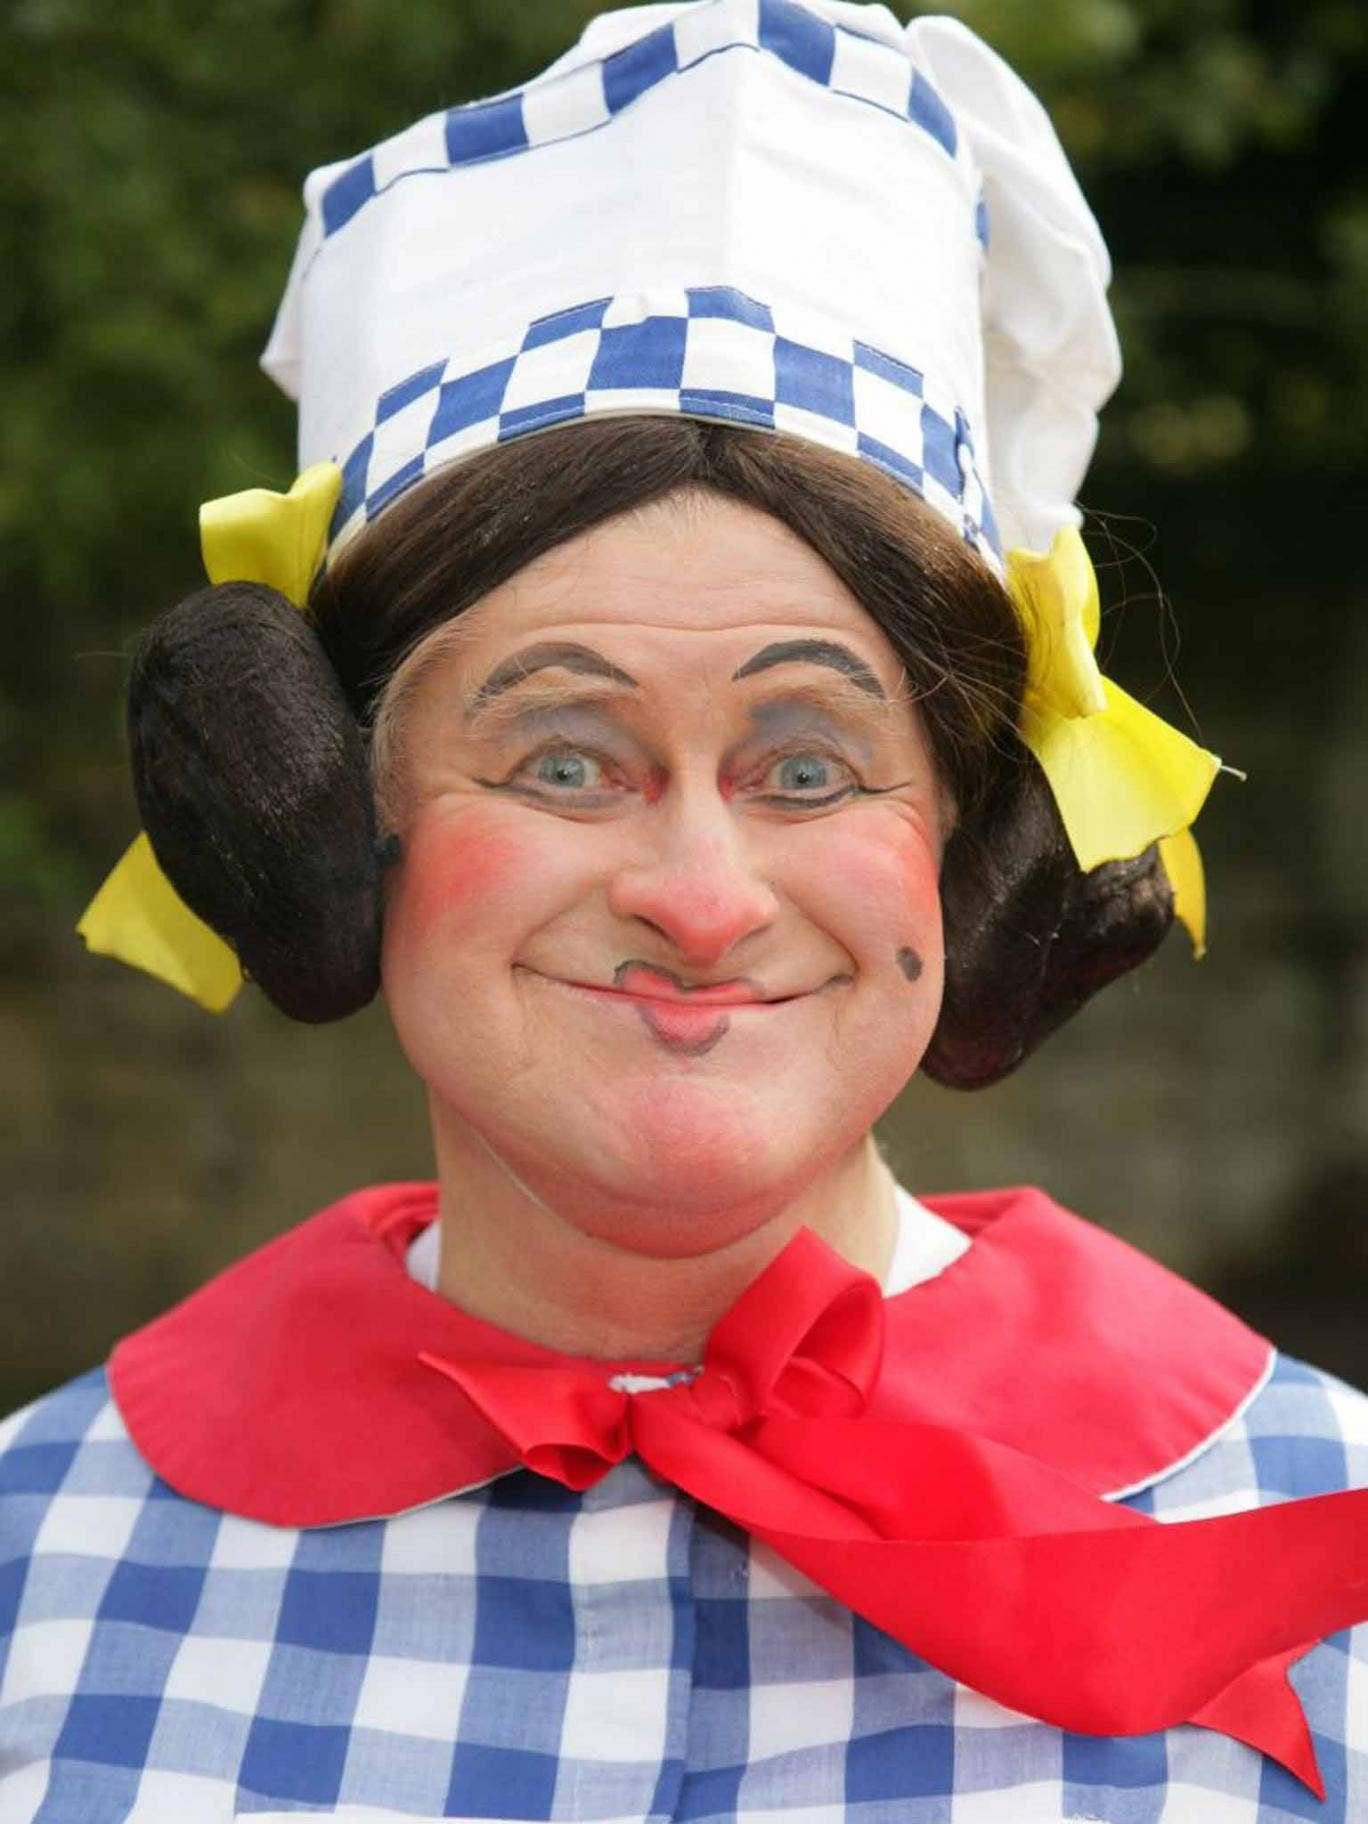 Harris as Sarah the Cook in the 2011-12 production of 'Dick Whittington' at Bath Theatre Royal